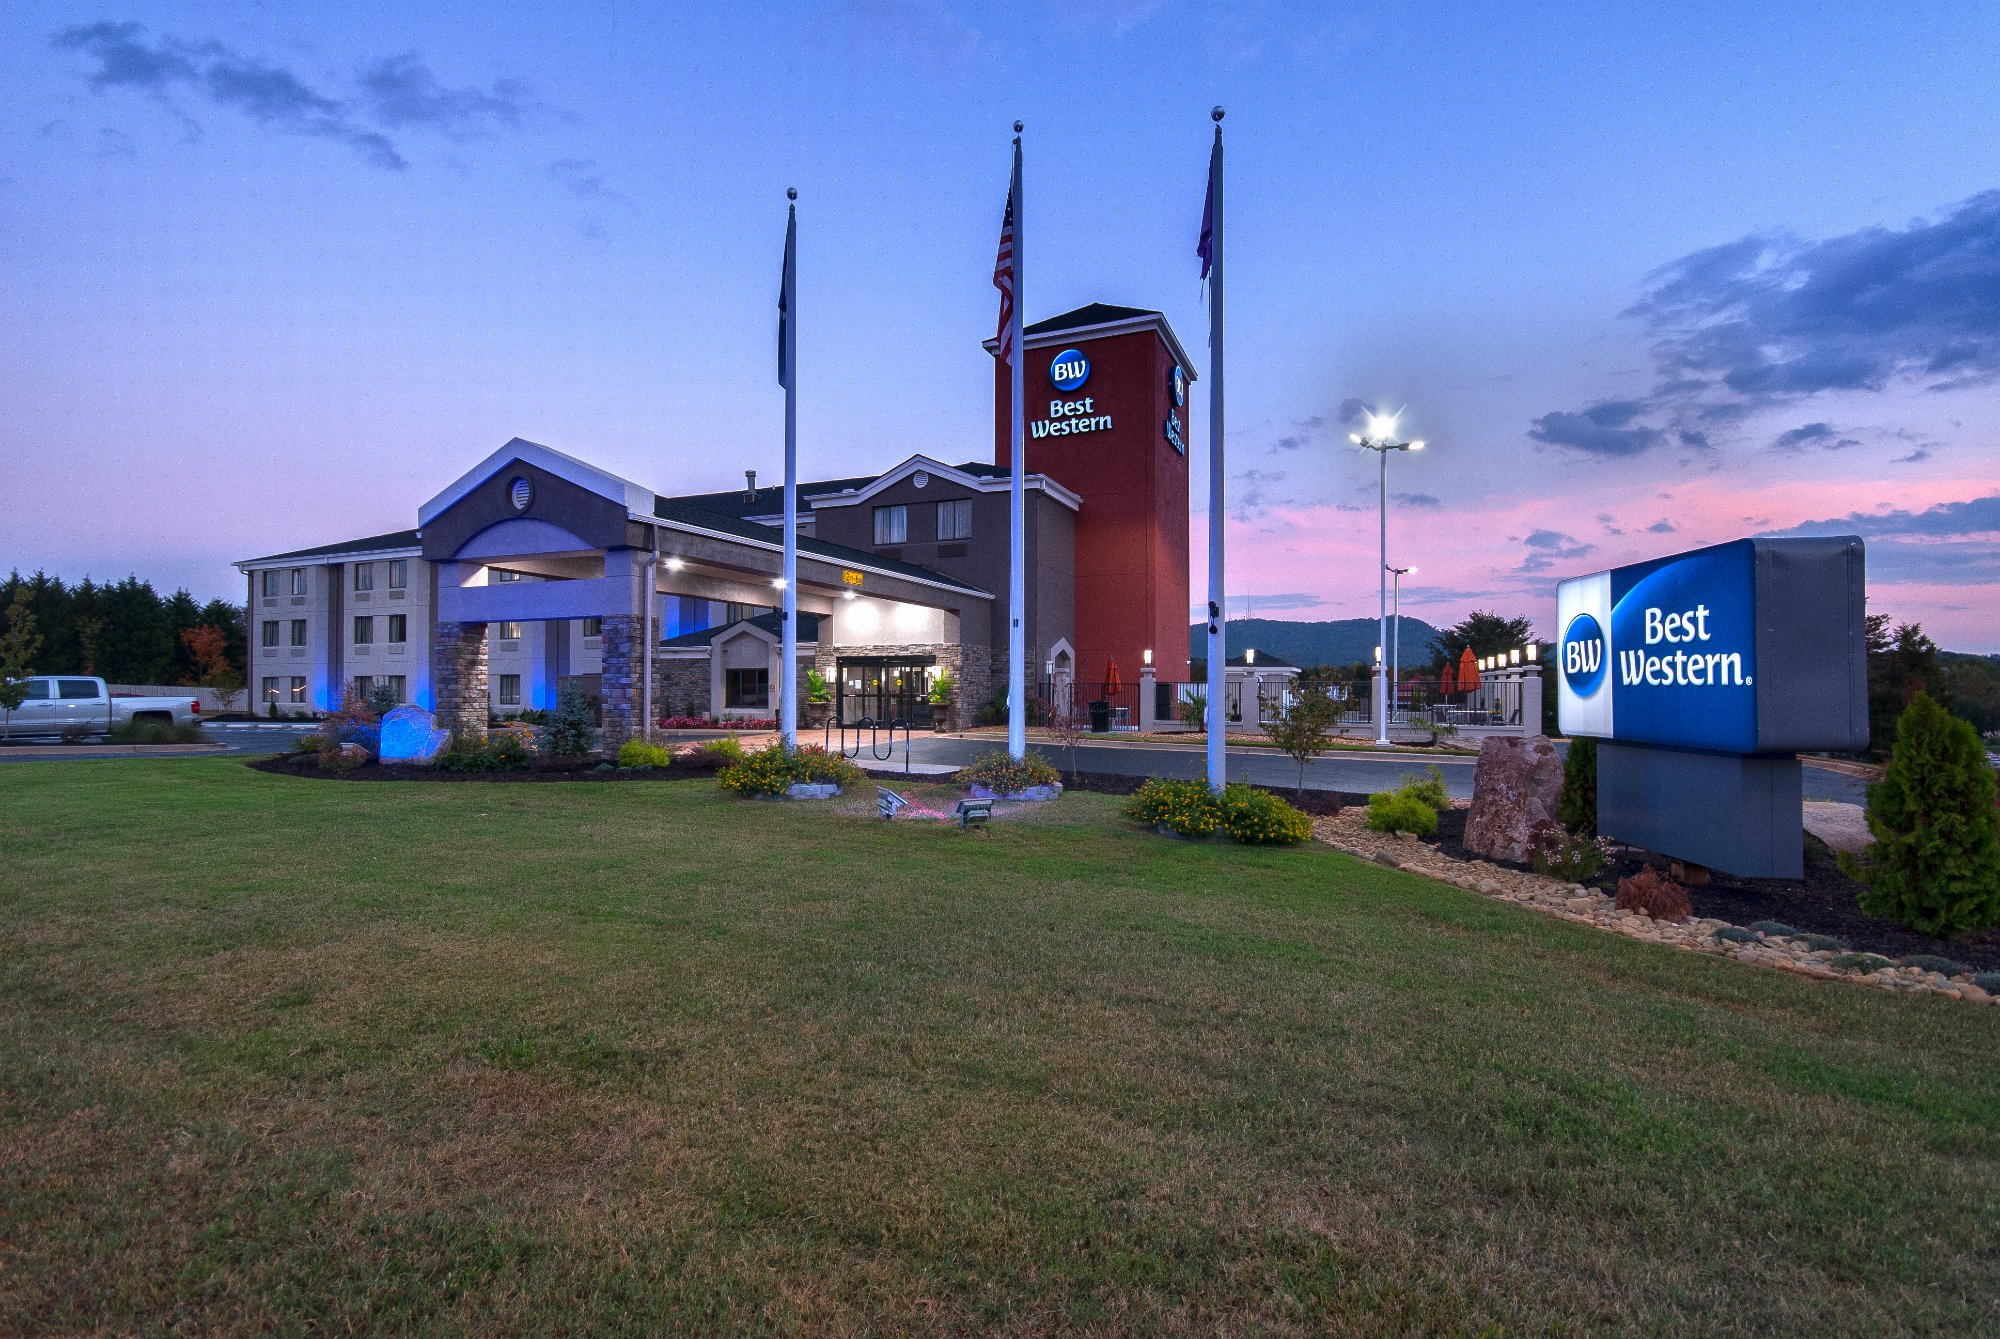 BEST WESTERN Travelers Rest / Greenville